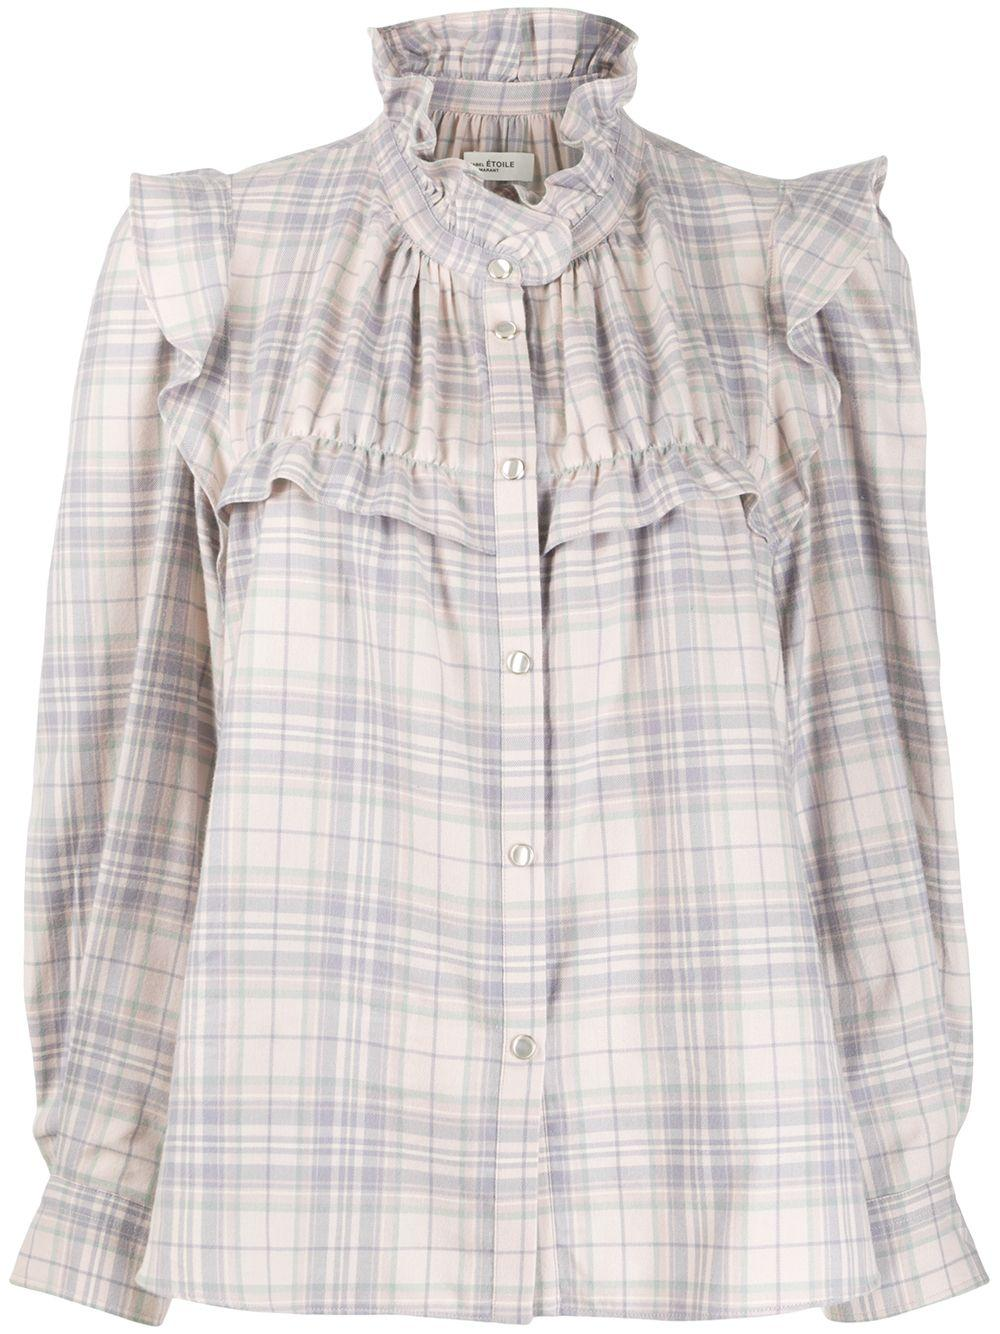 Isabel Marant Étoile Atedy checked blouse